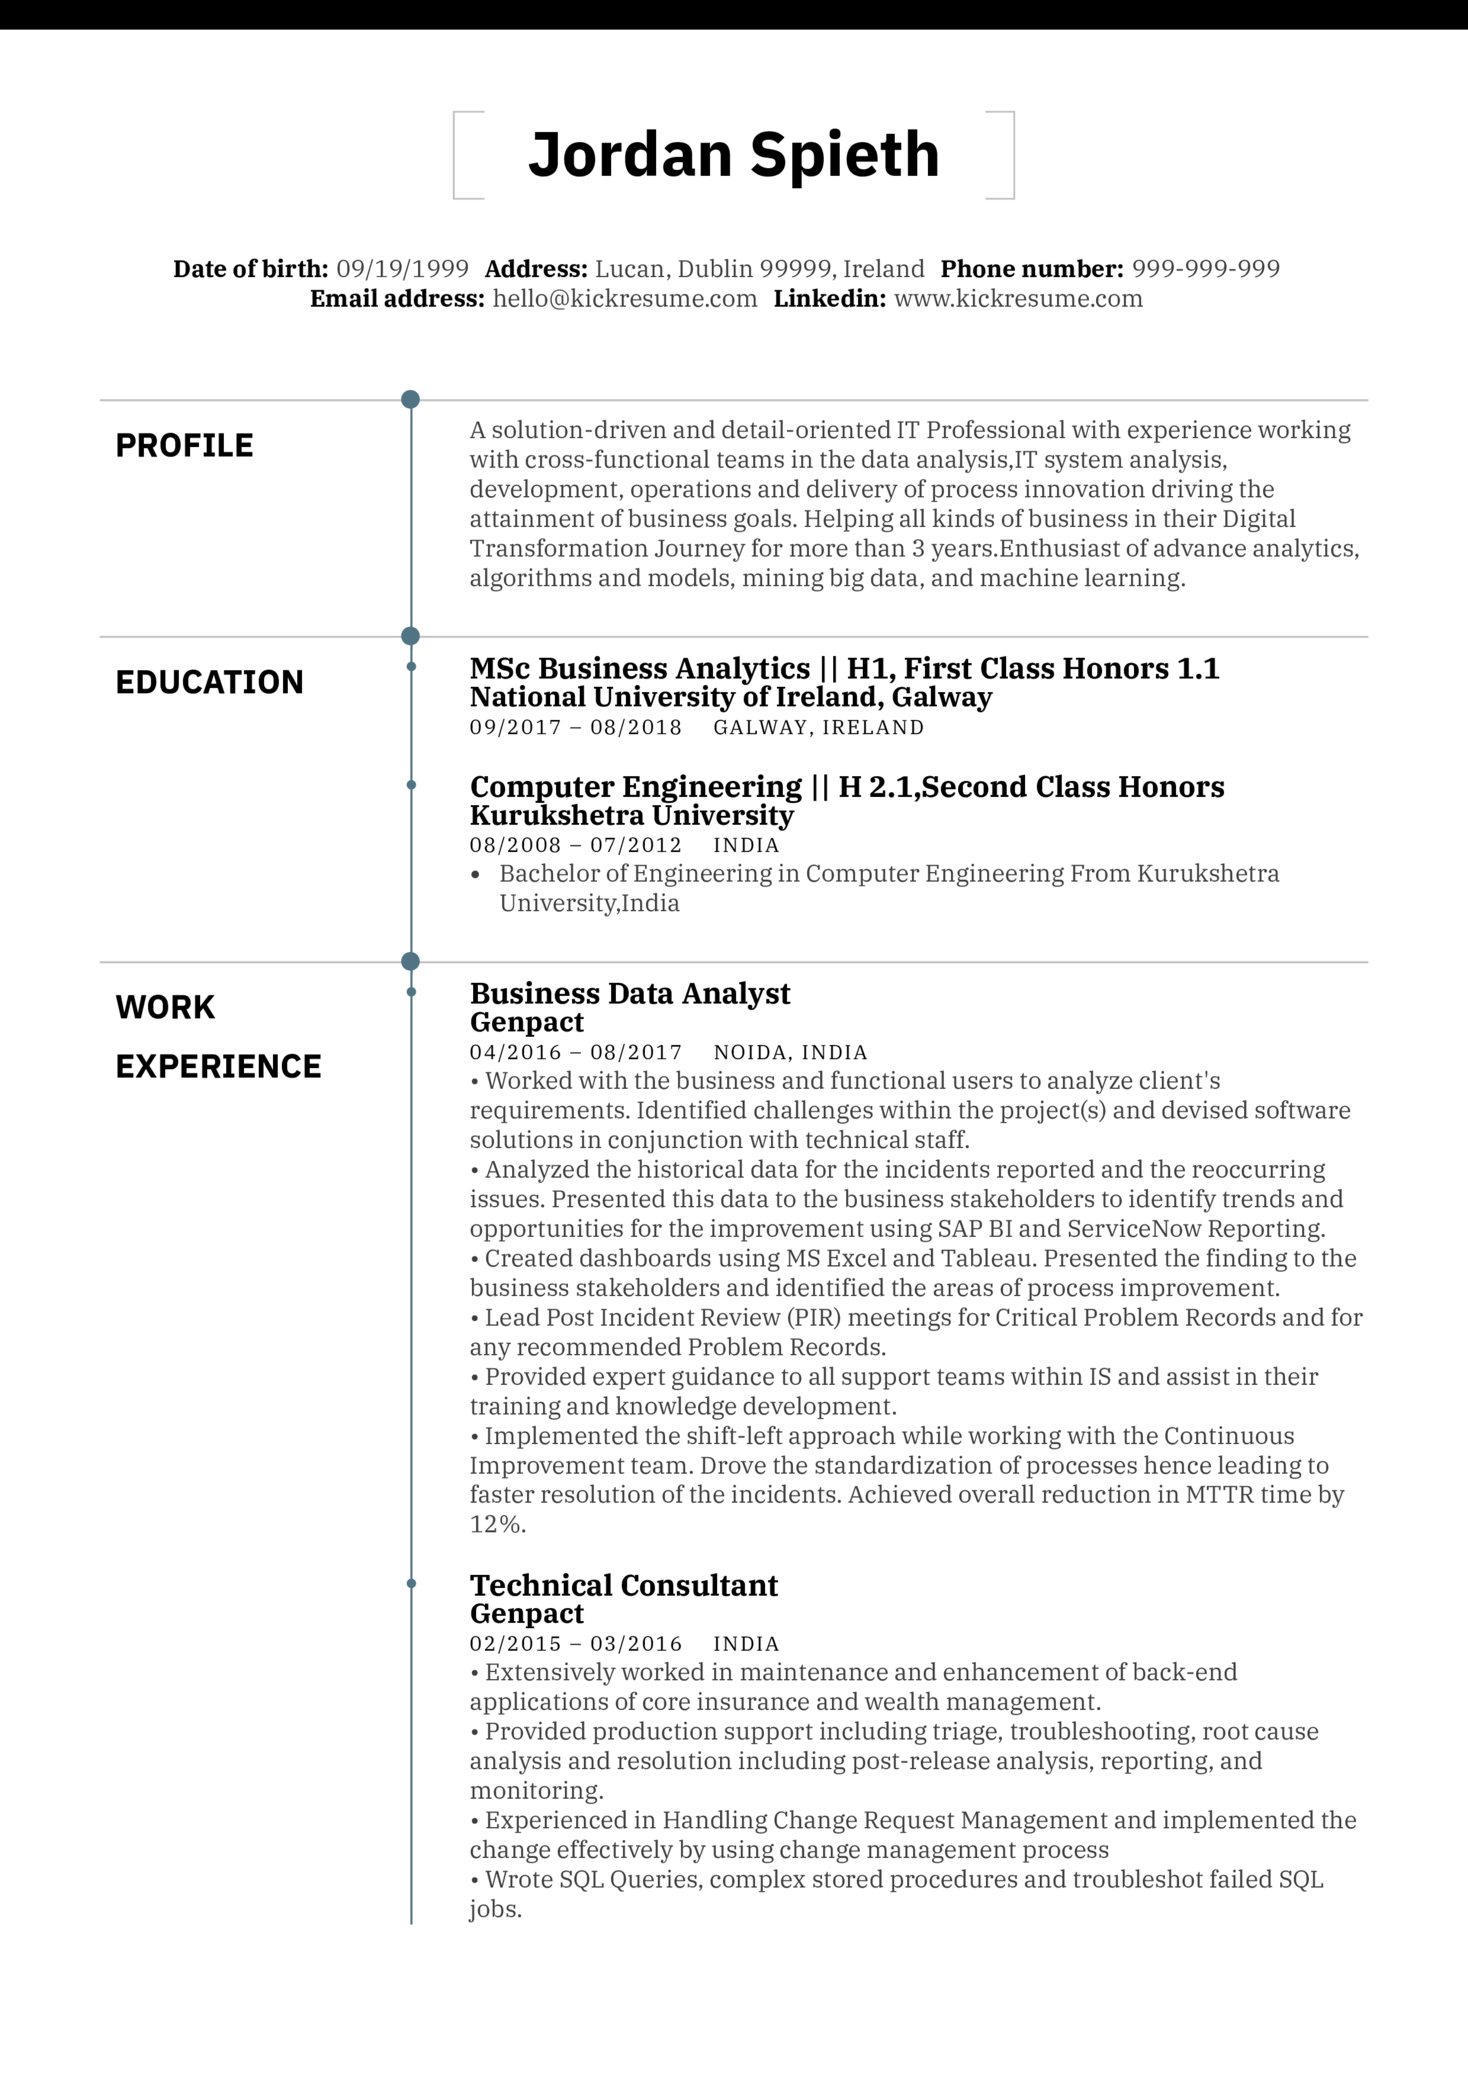 Business Analyst Resume Sample (parte 1)